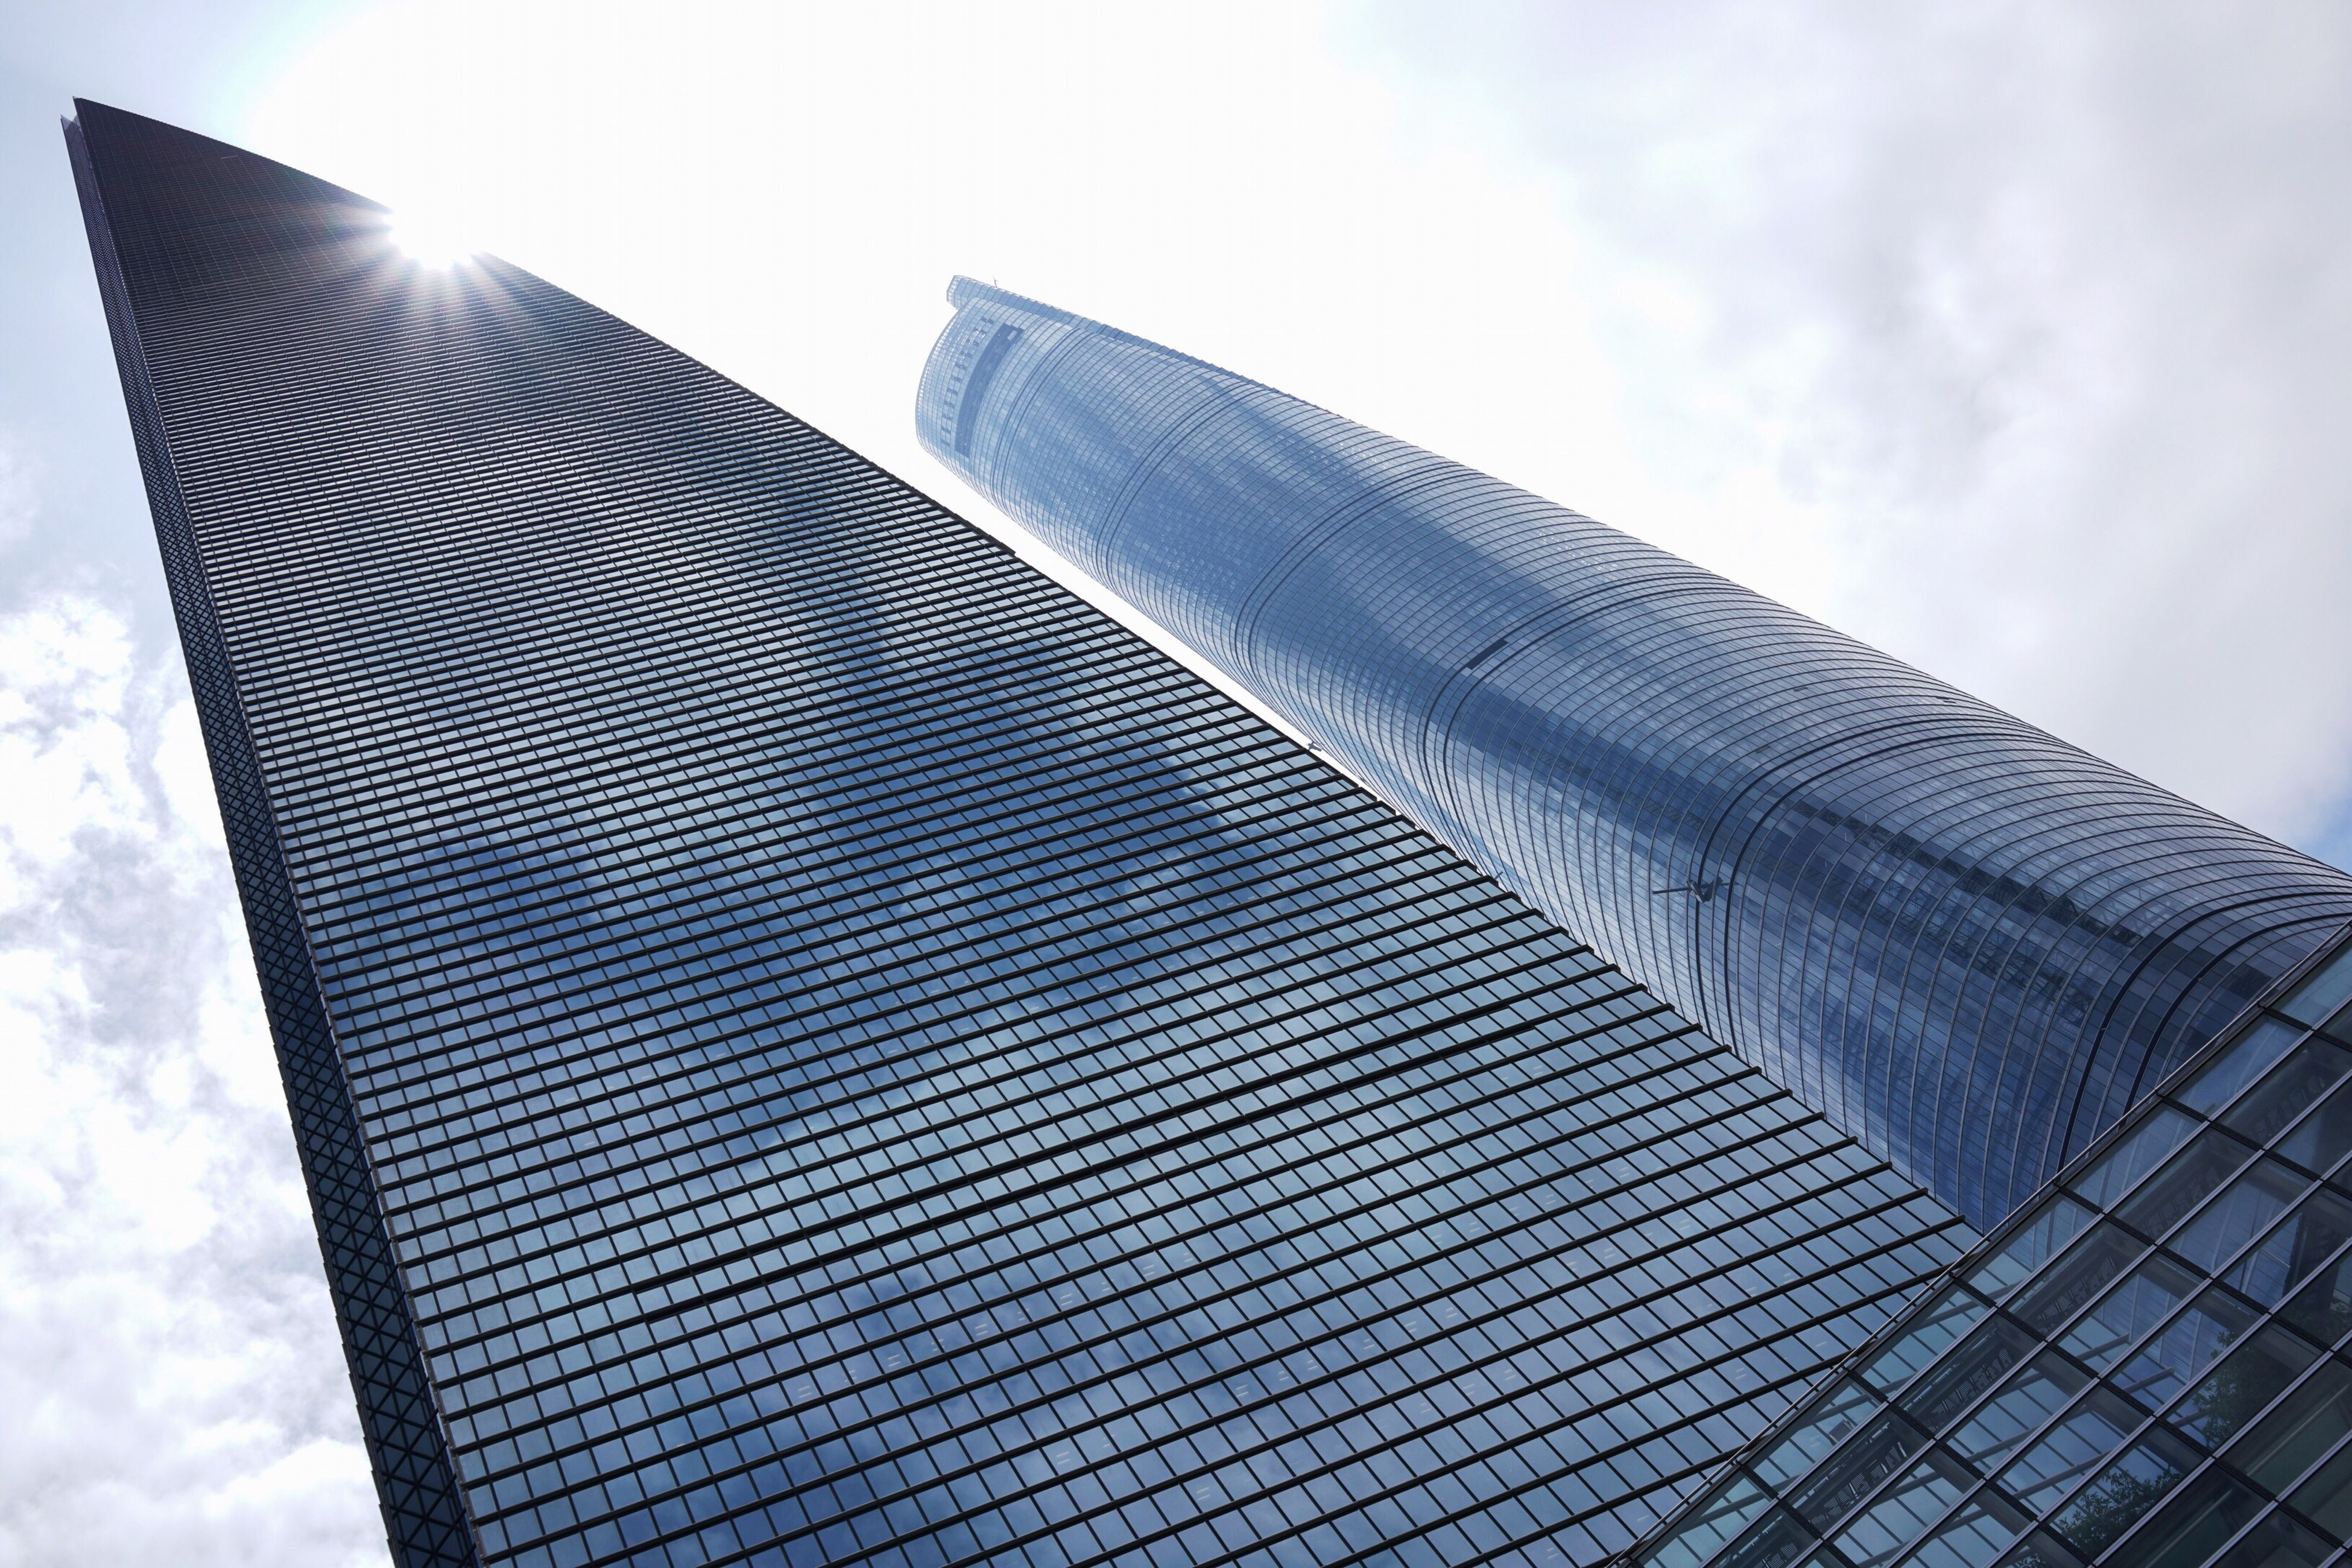 low angle view, modern, architecture, building exterior, built structure, office building, skyscraper, sky, tall - high, glass - material, city, tower, cloud - sky, building, reflection, day, pattern, cloud, outdoors, no people